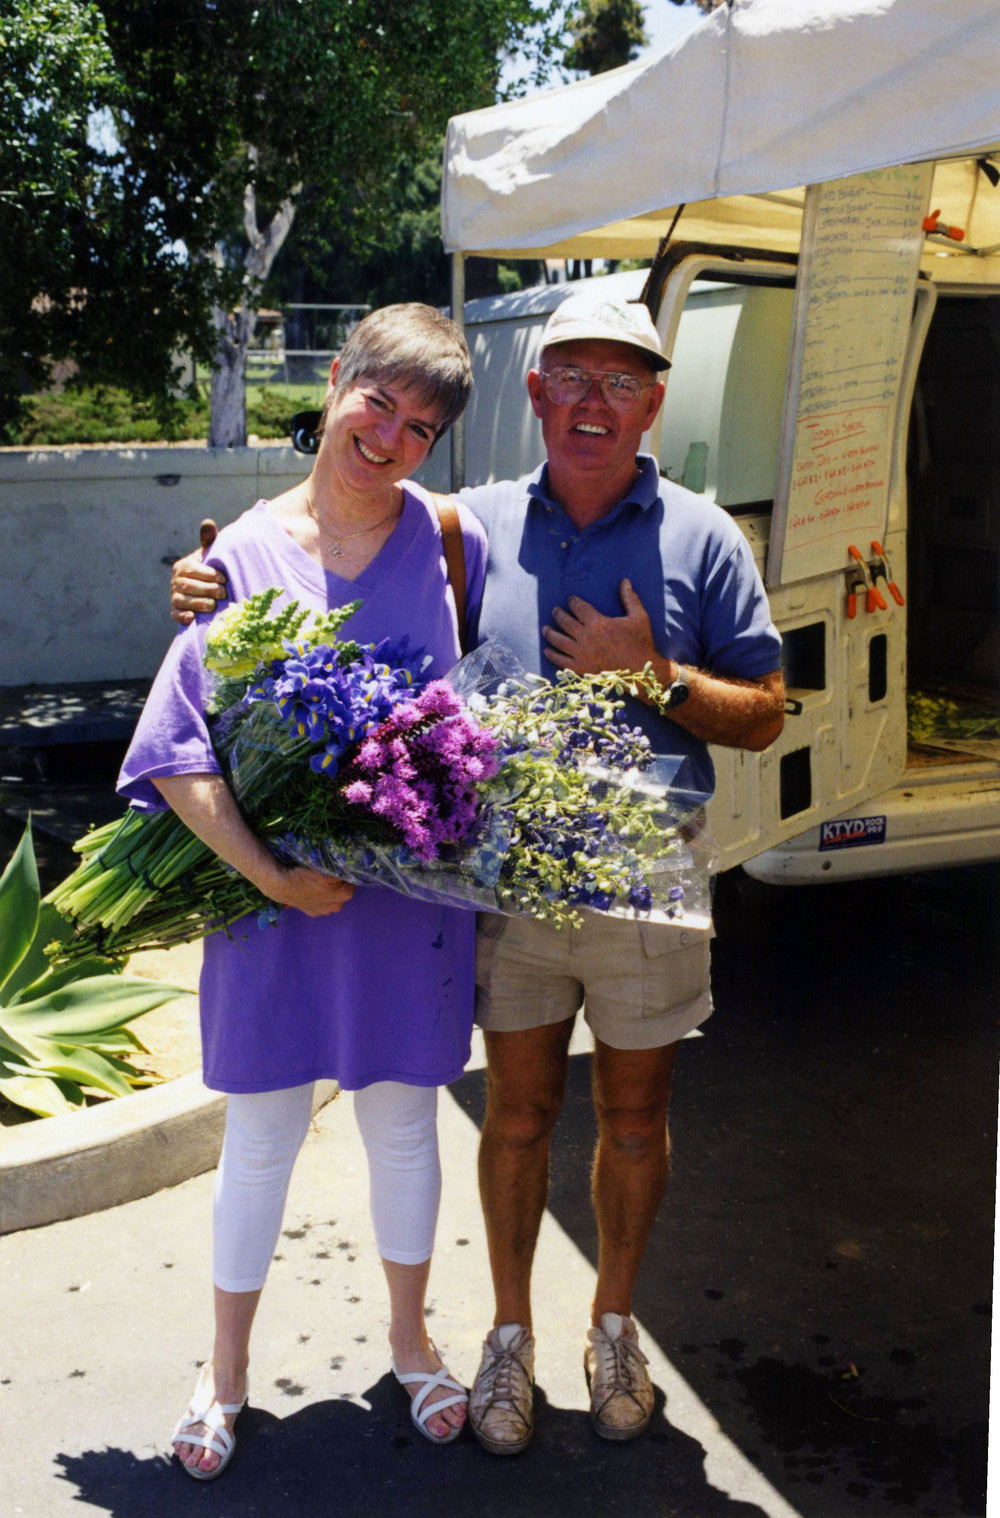 Sherry Morez & Frits de Vries  Sherry retired from head nurse of Pedatrics only to keep giving by being one of the first Flower Empower volunteers, here with the first grower to donate flowers (tulips) Frits (wife Gerda and daughter Barbara not pictured) :(